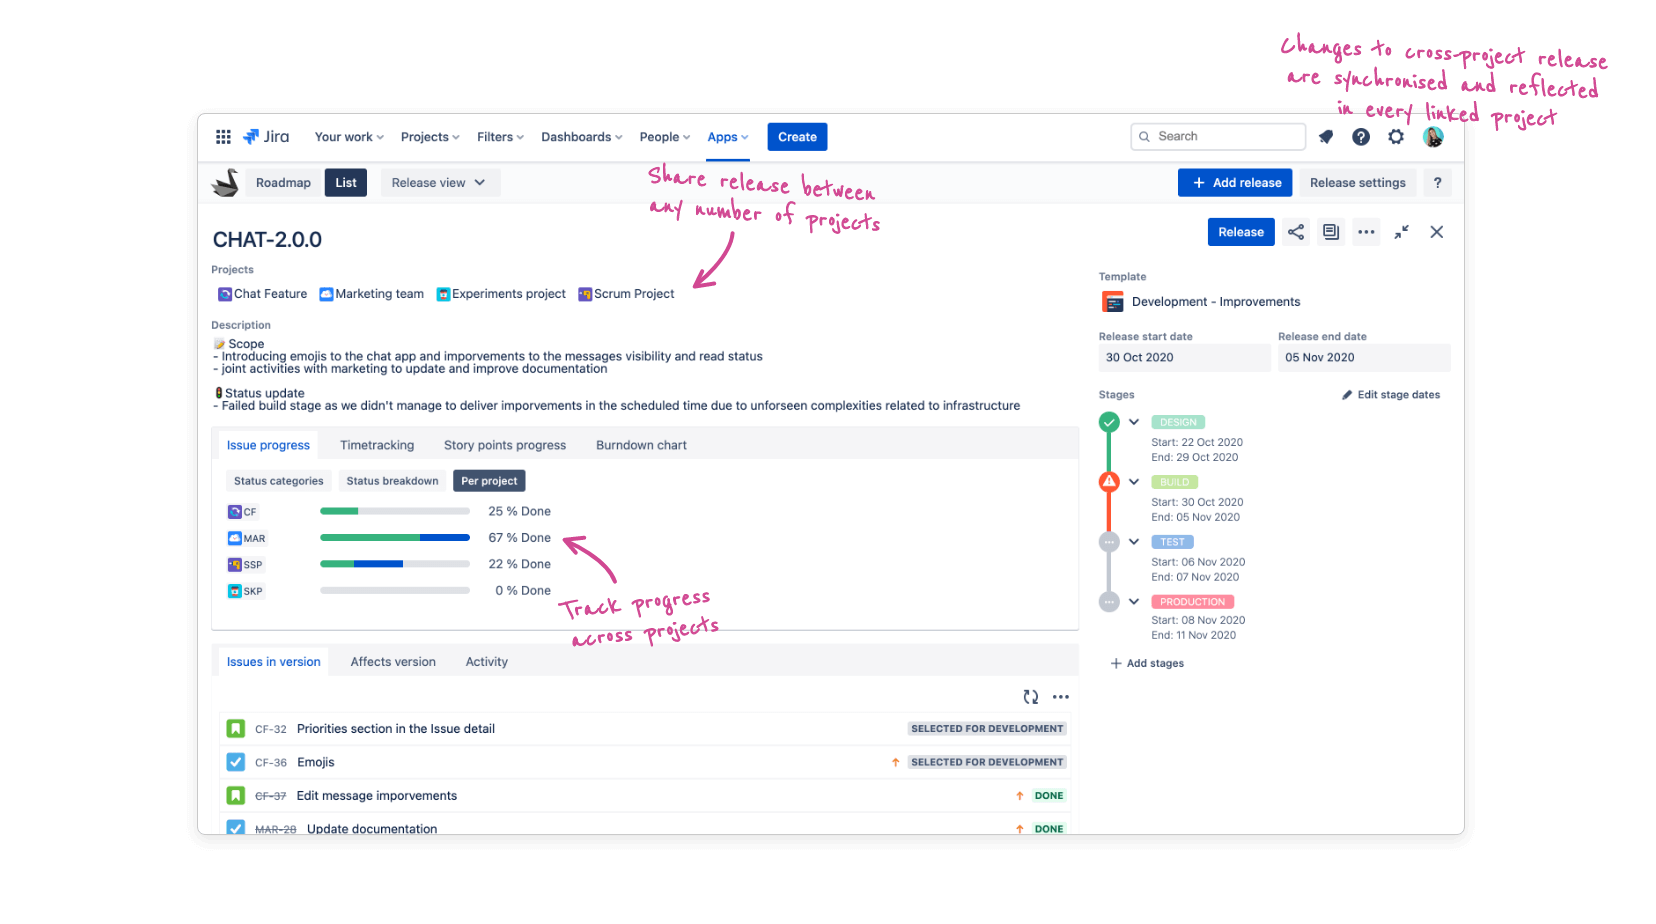 Cross-project releases and reporting - Swanly for Jira work management